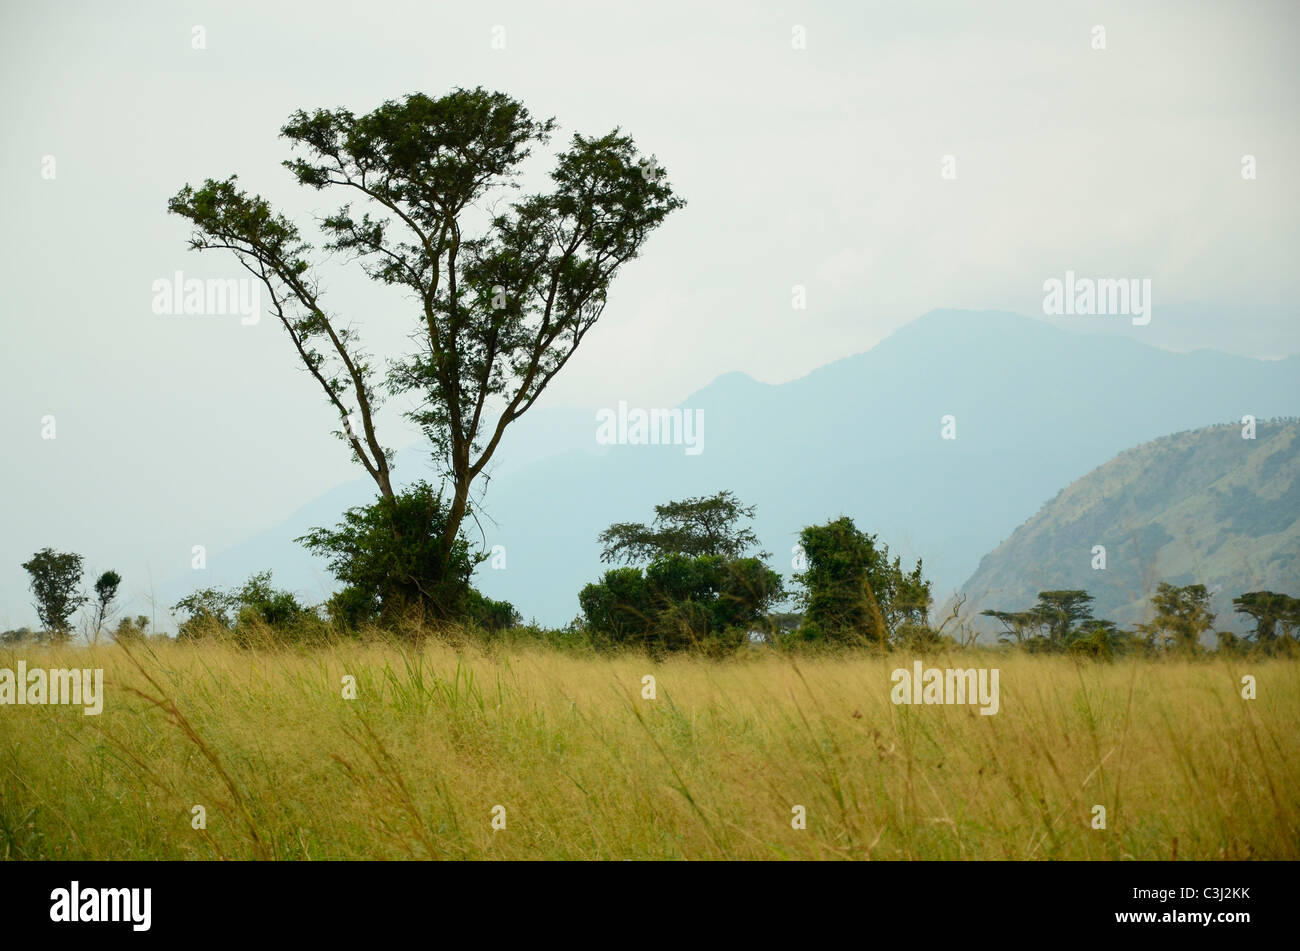 Virunga National Park, eastern Democratic Republic of Congo, Central Africa in the great Rift Valley. - Stock Image